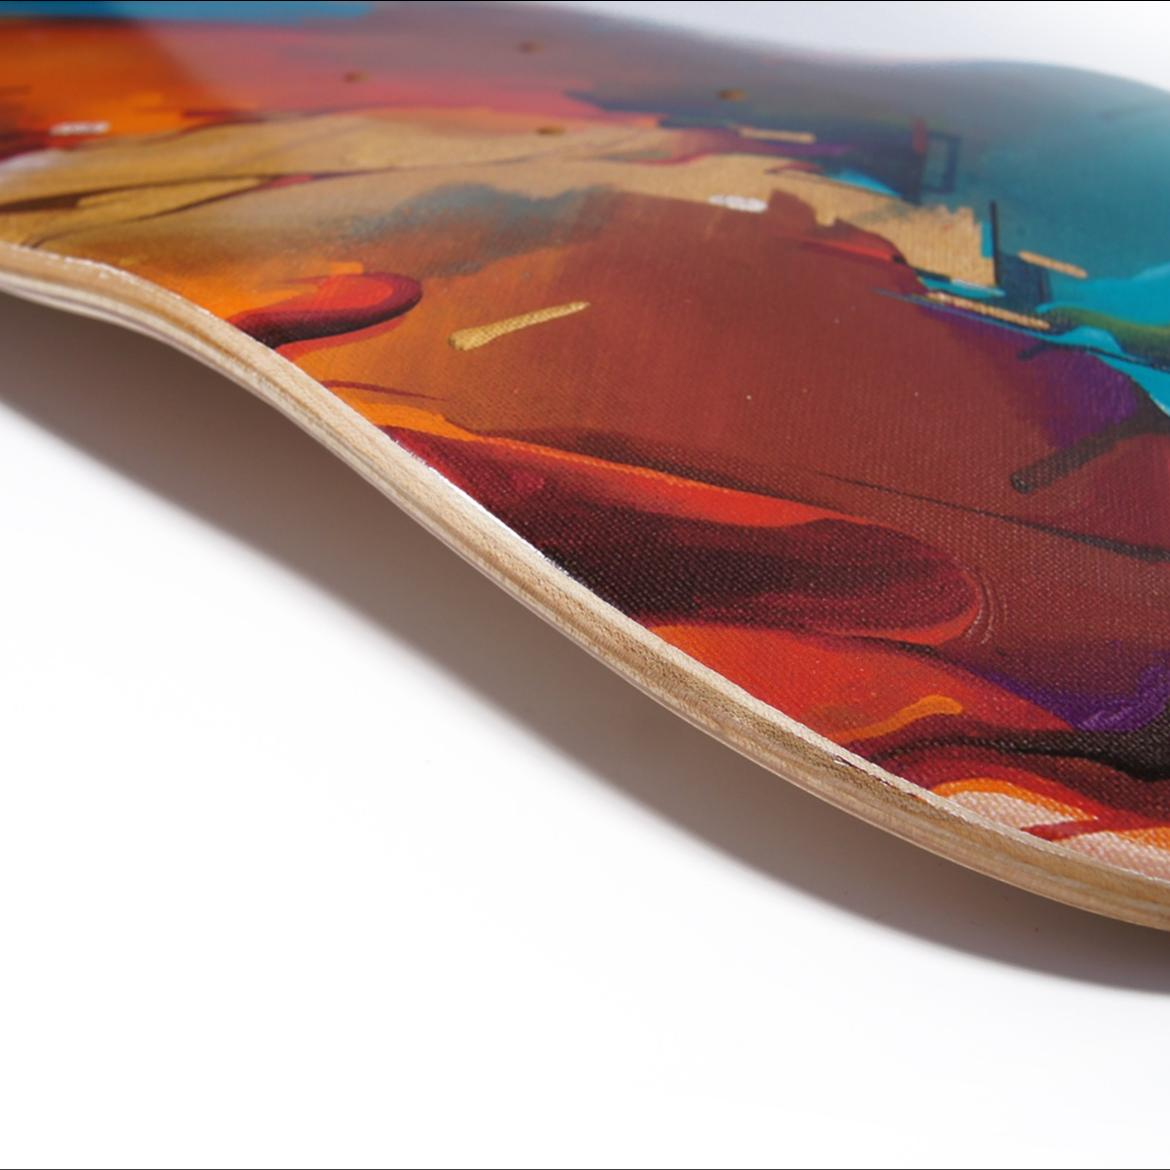 A work by Does - Skate deck 'Mood'_thumb